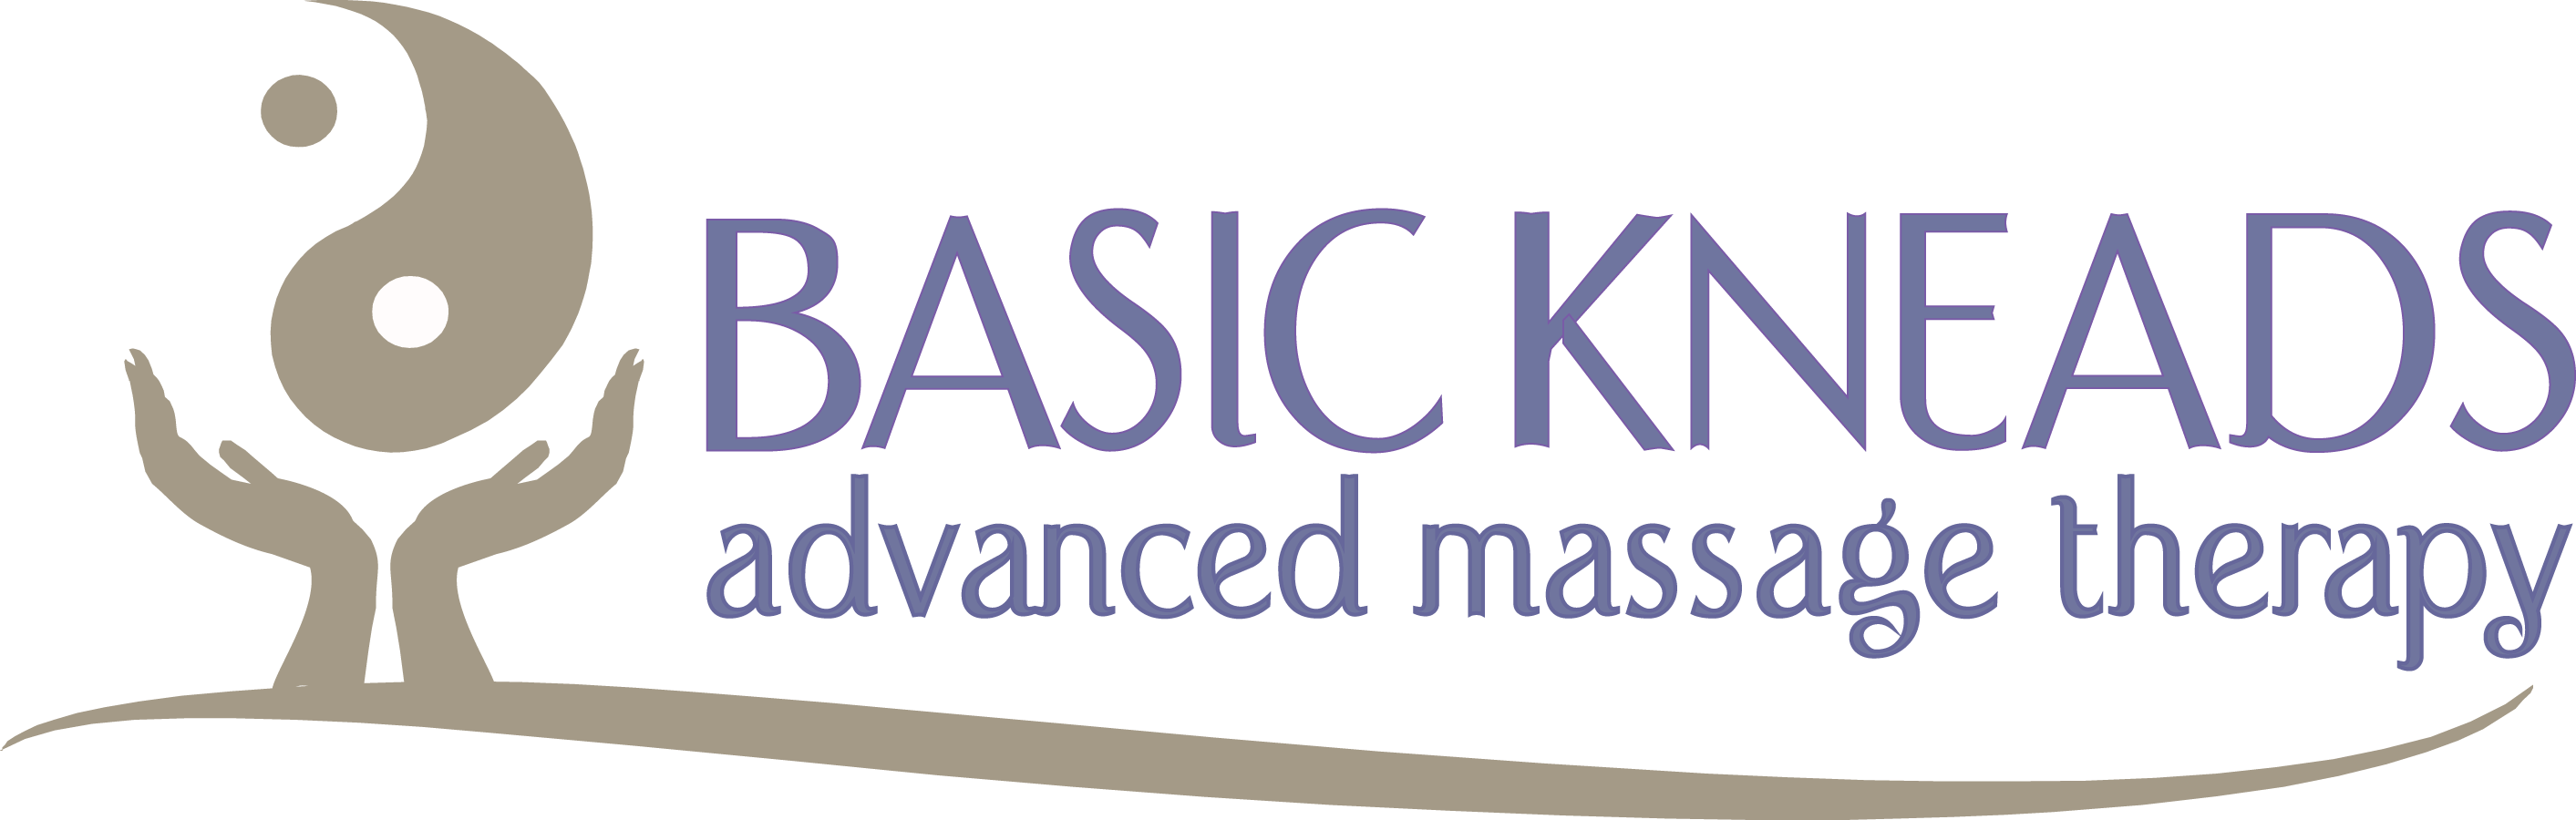 Basic Kneads Massage Therapy